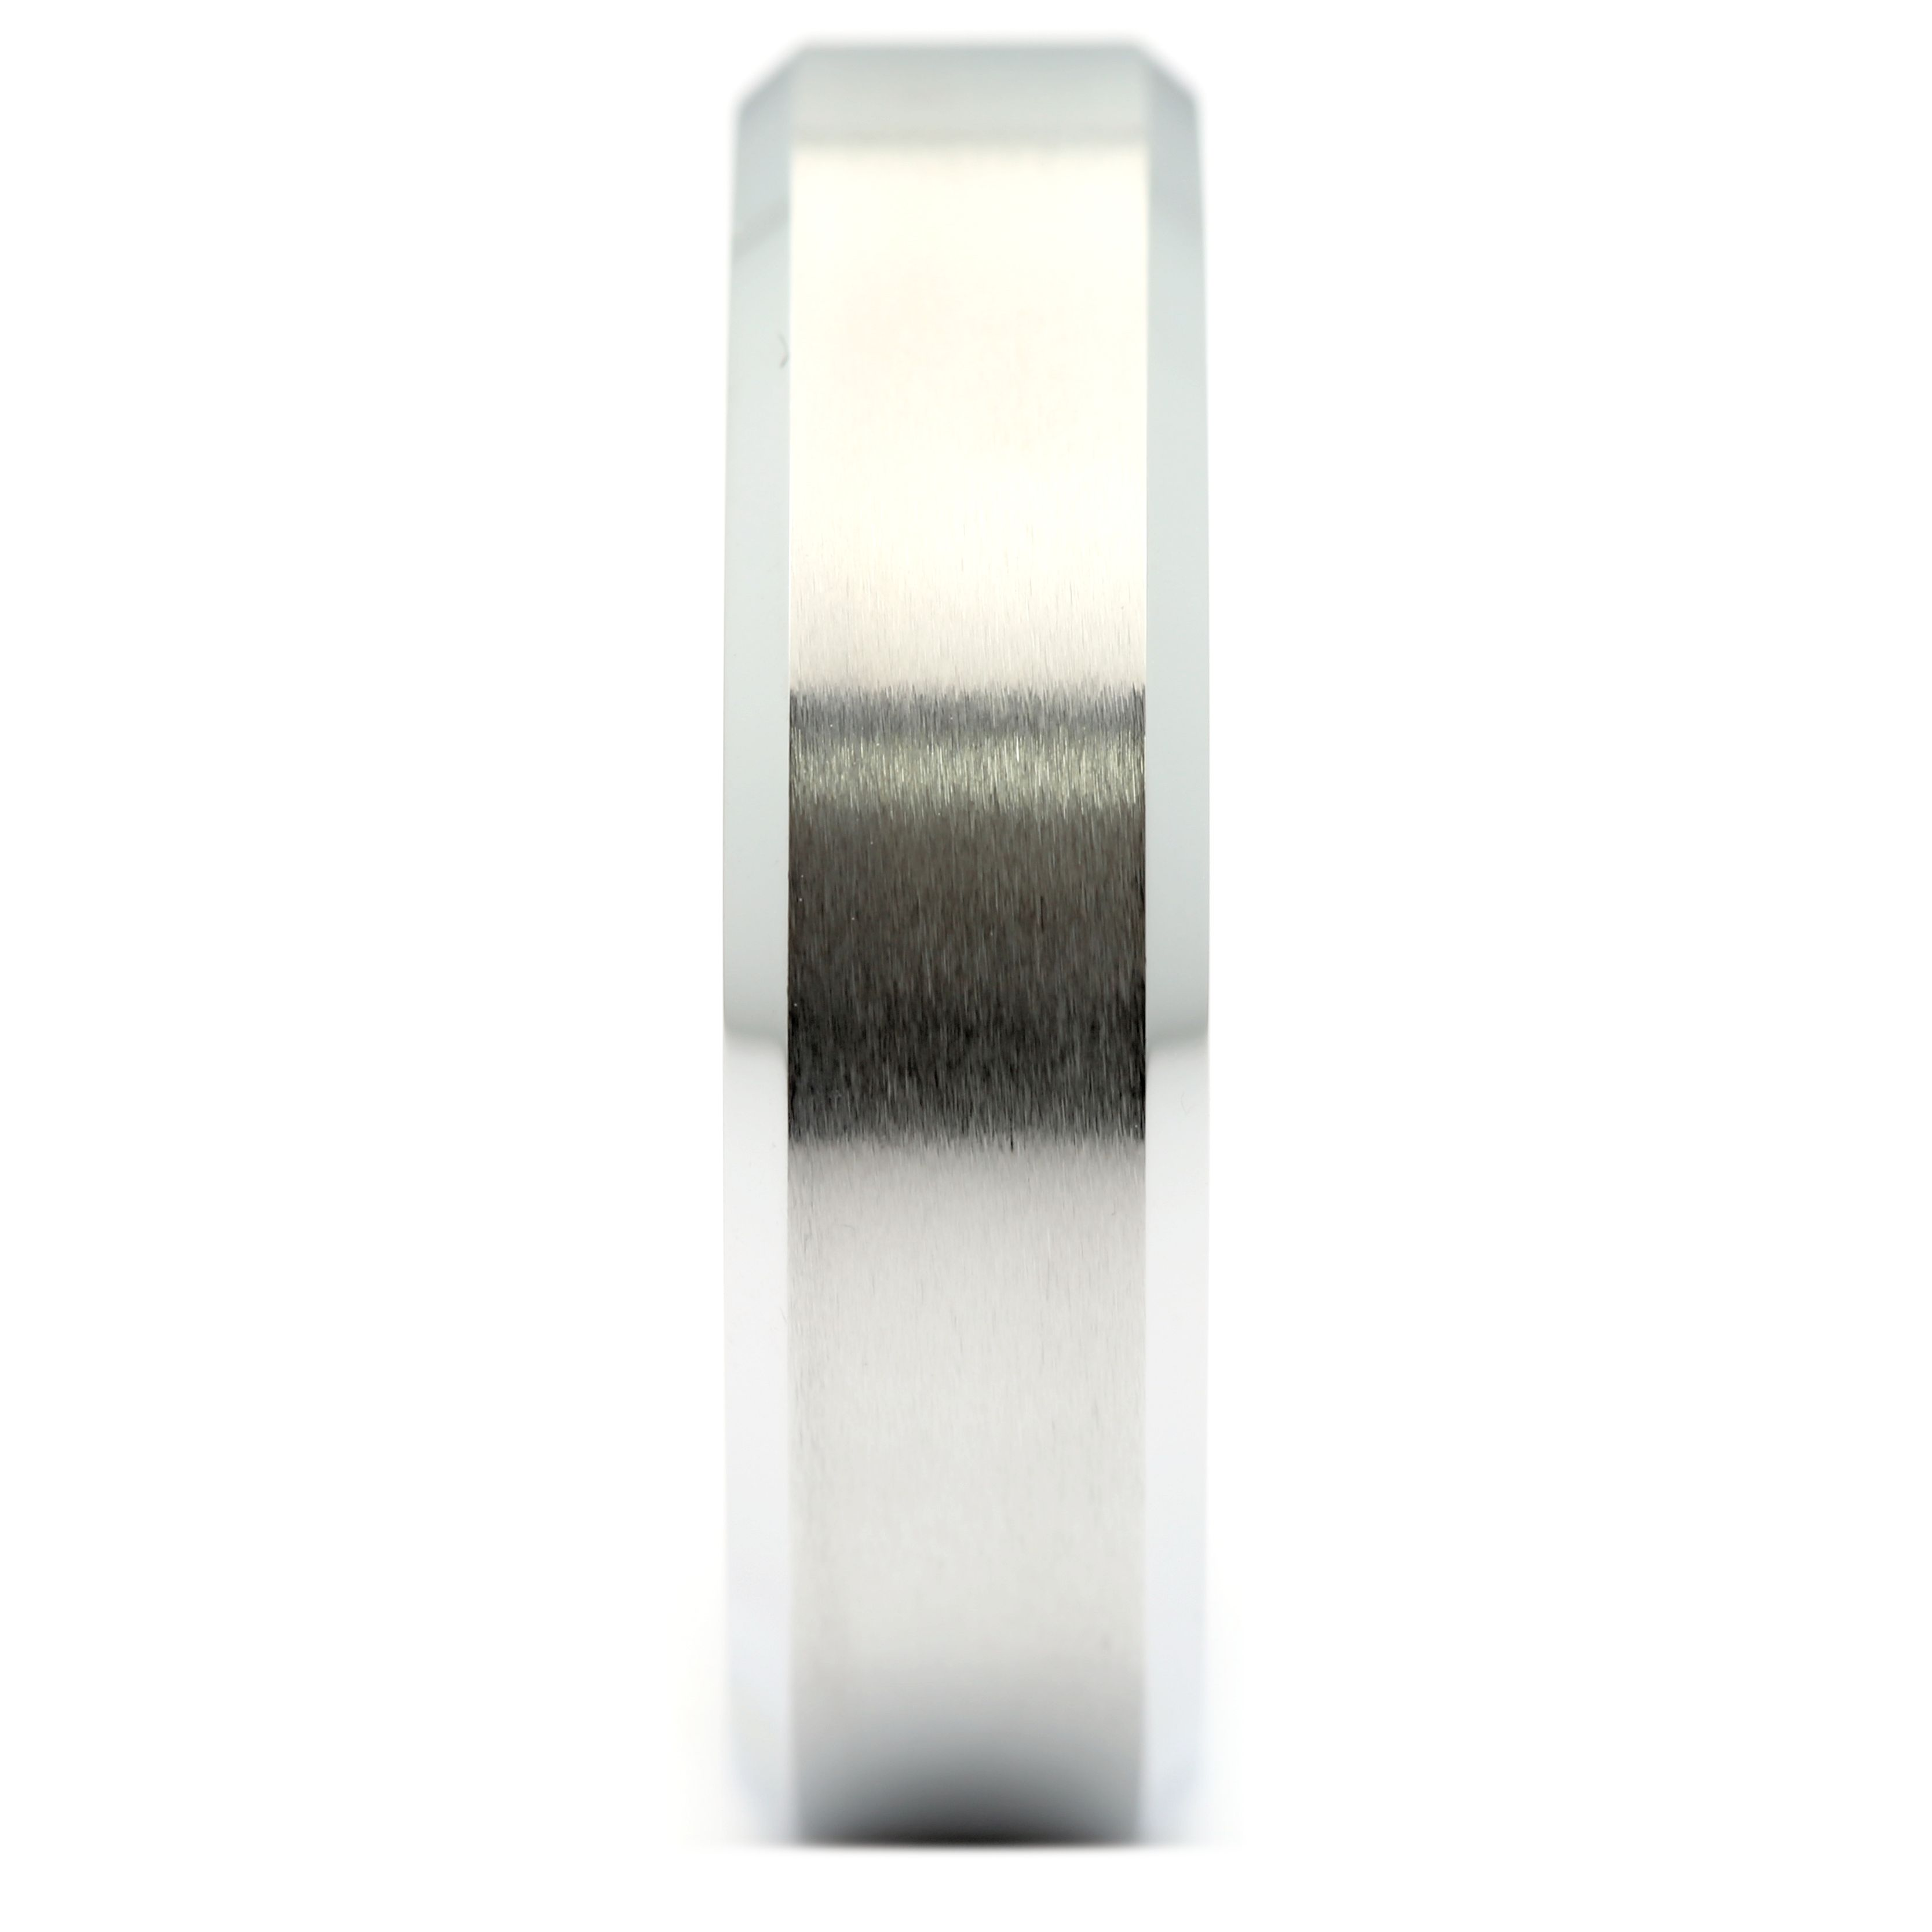 6mm-Brushed-White-Tungsten-Carbide-Wedding-Band-Polished-Edges-Ring thumbnail 10